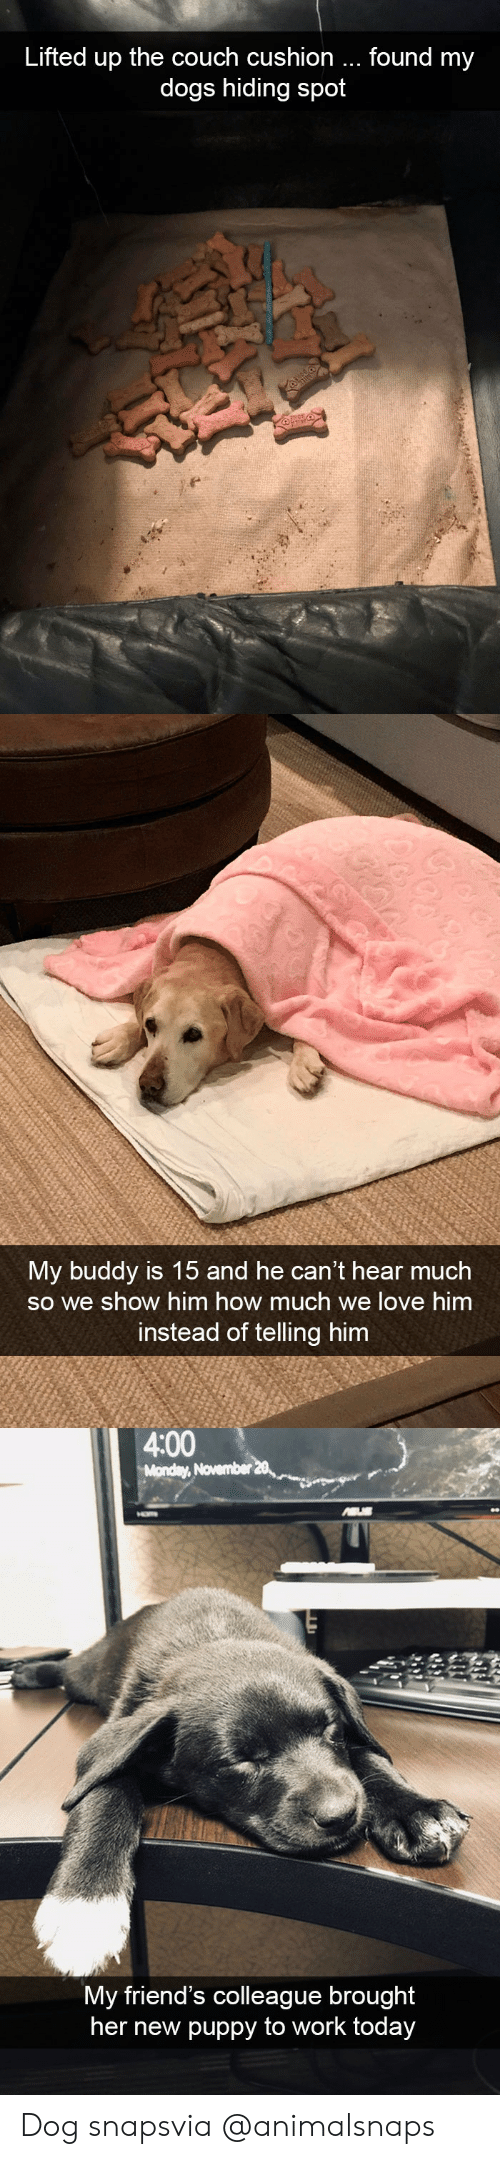 Dogs, Friends, and Love: Lifted up the couch cushion  found my  dogs hiding spot   My buddy is 15 and he can't hear much  so we show him how much we love him  instead of telling him   4:00  Monday, November  My friend's colleague brought  her new puppy to work to  day Dog snapsvia @animalsnaps